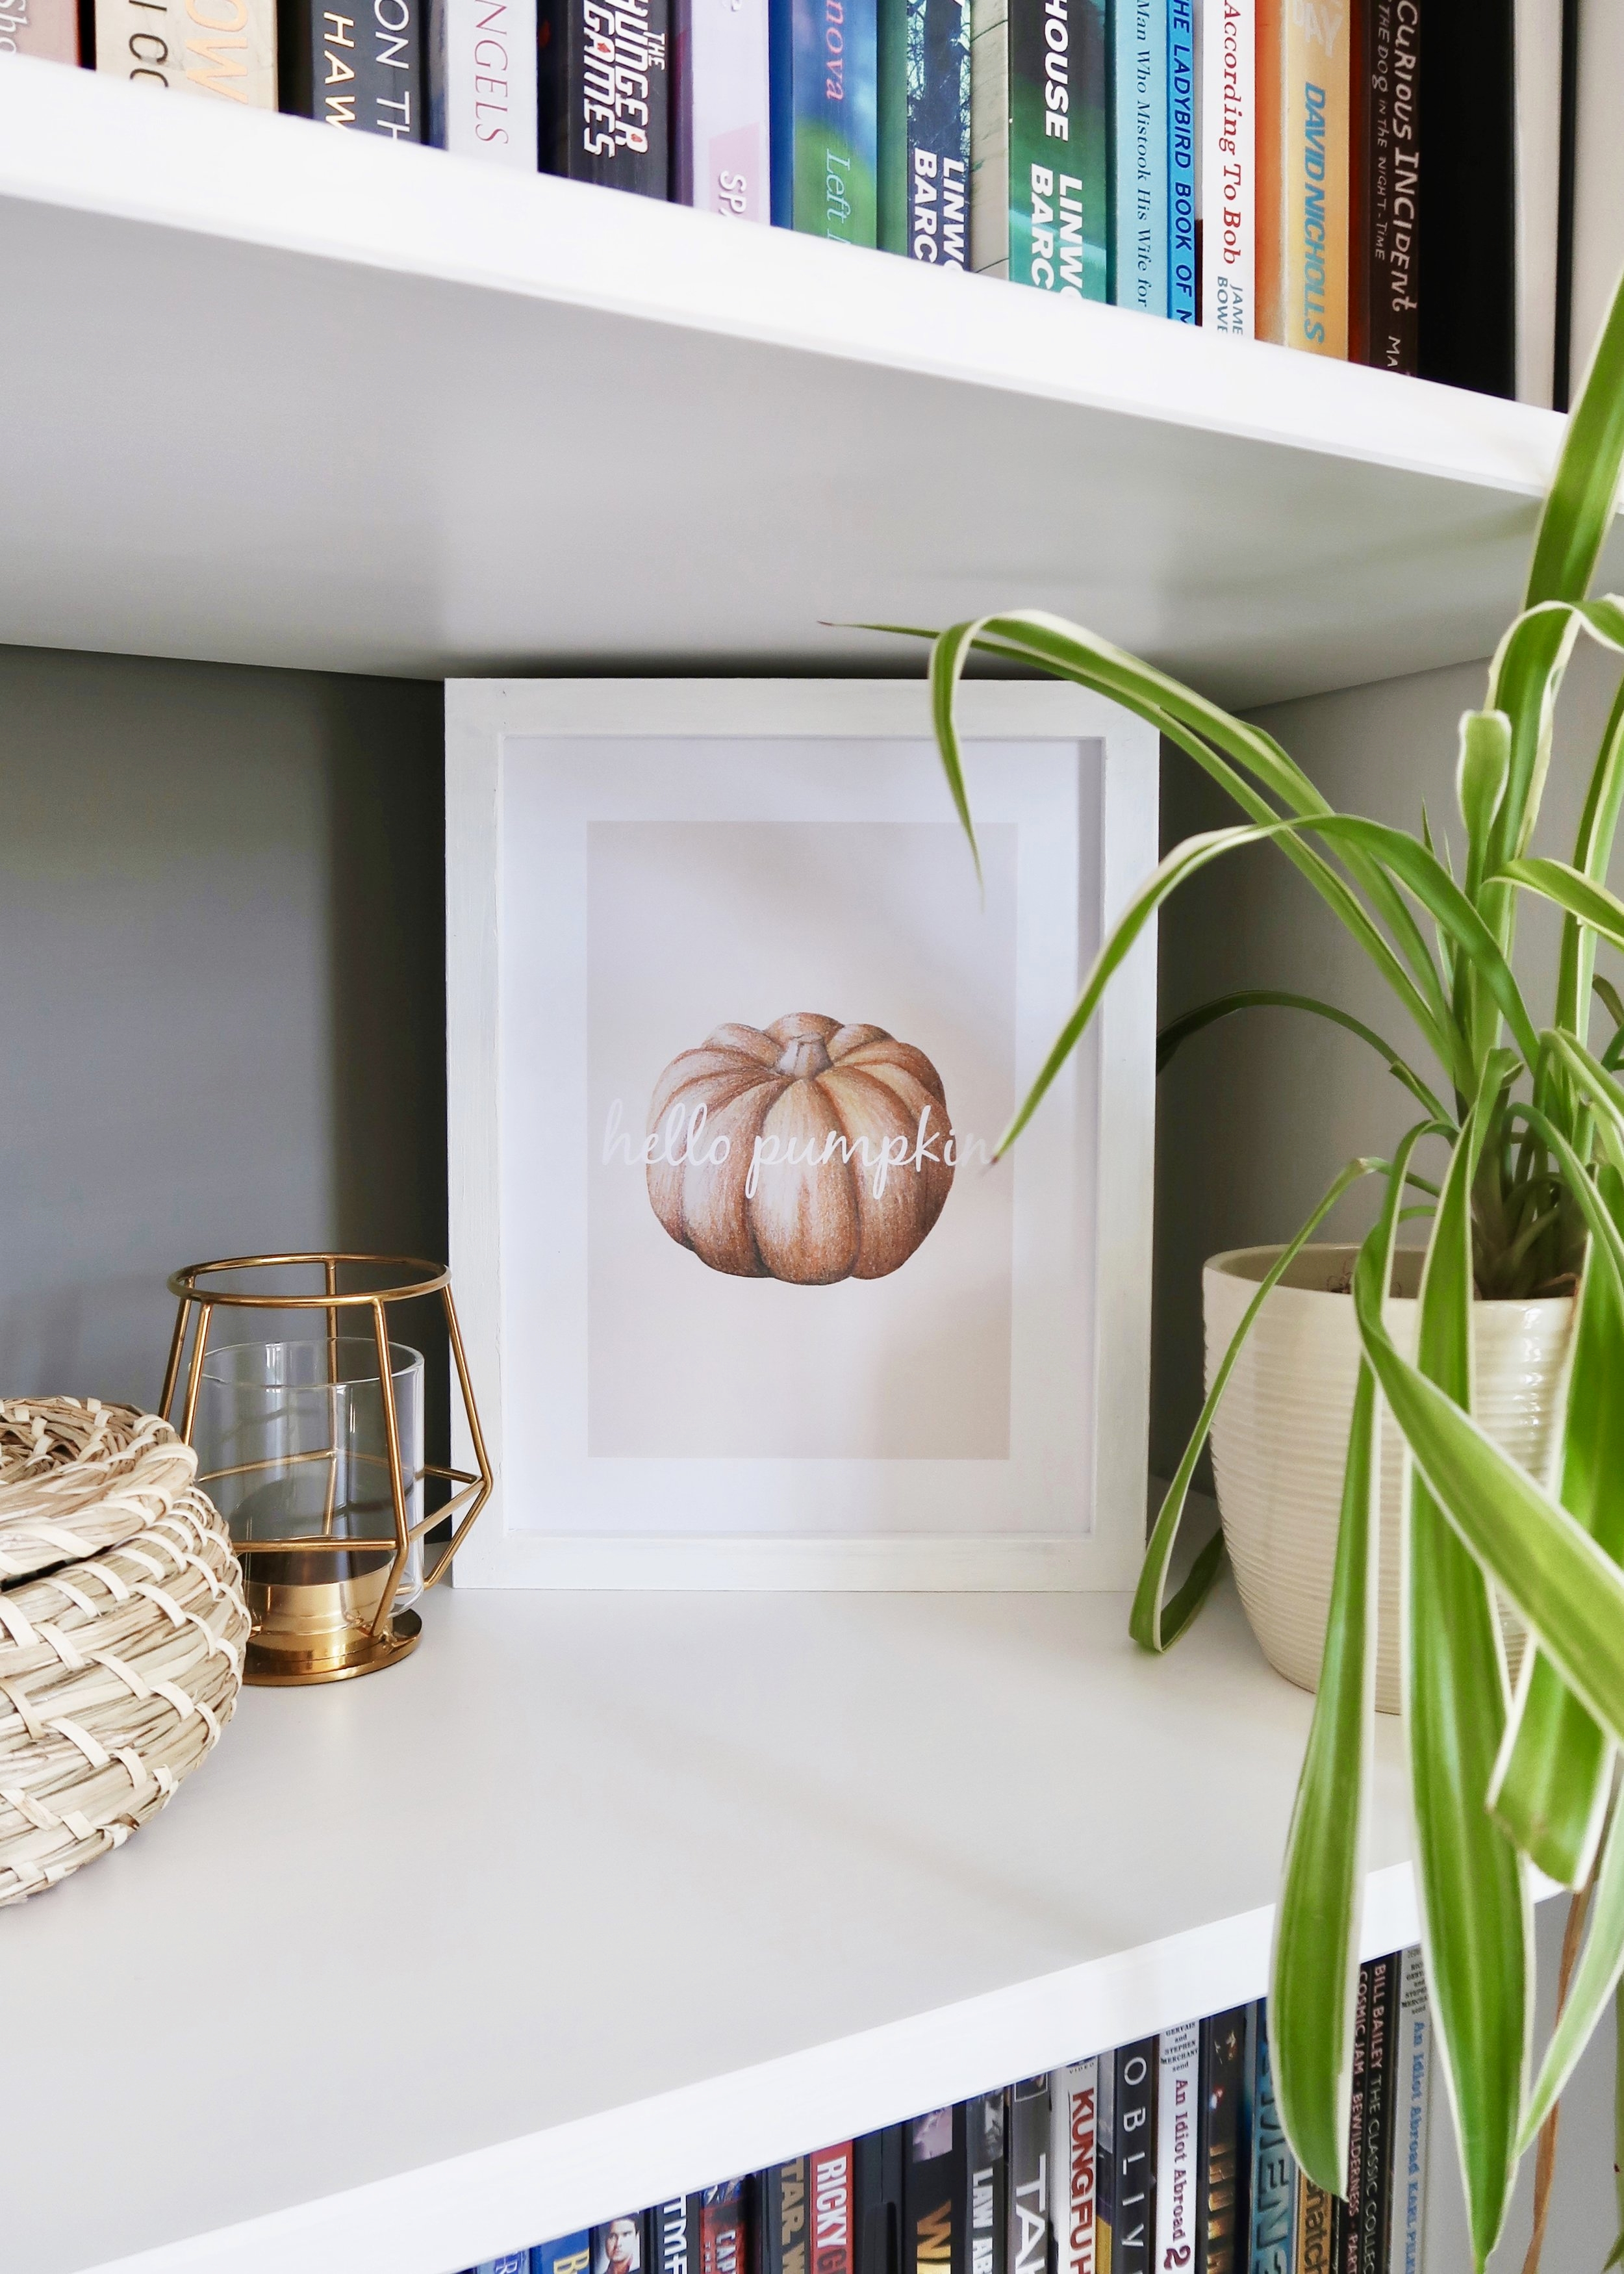 Printable Pumpkin Wall Art by Isoscella